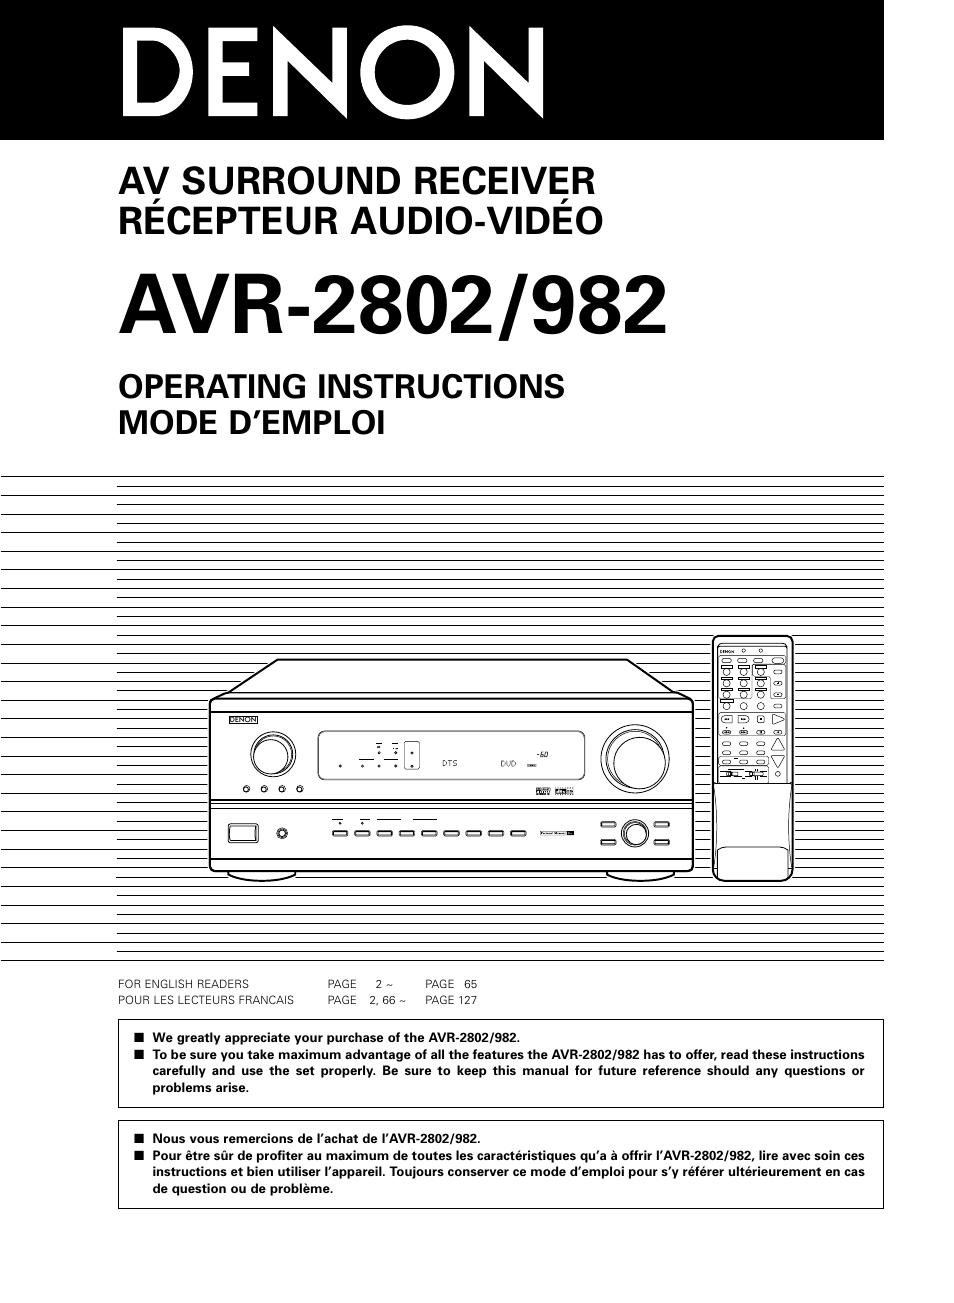 denon avr 2802 982 user manual 73 pages rh manualsdir com denon avr 2800 user manual Denon AVR 3000 Specs